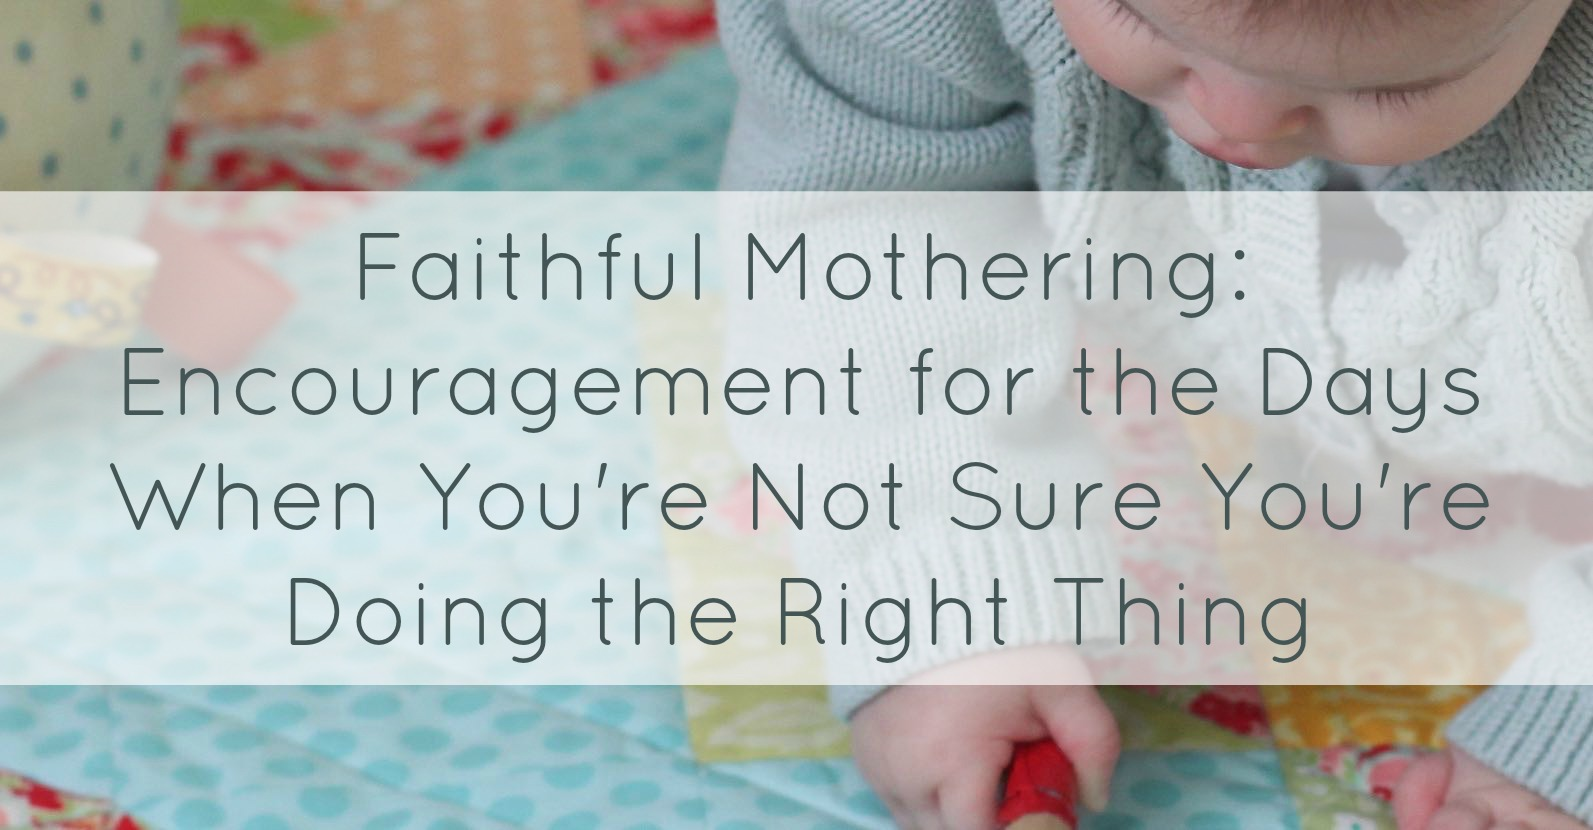 Faithful Mothering: Encouragement for the Days When You're Not Sure You're Doing the Right Thing